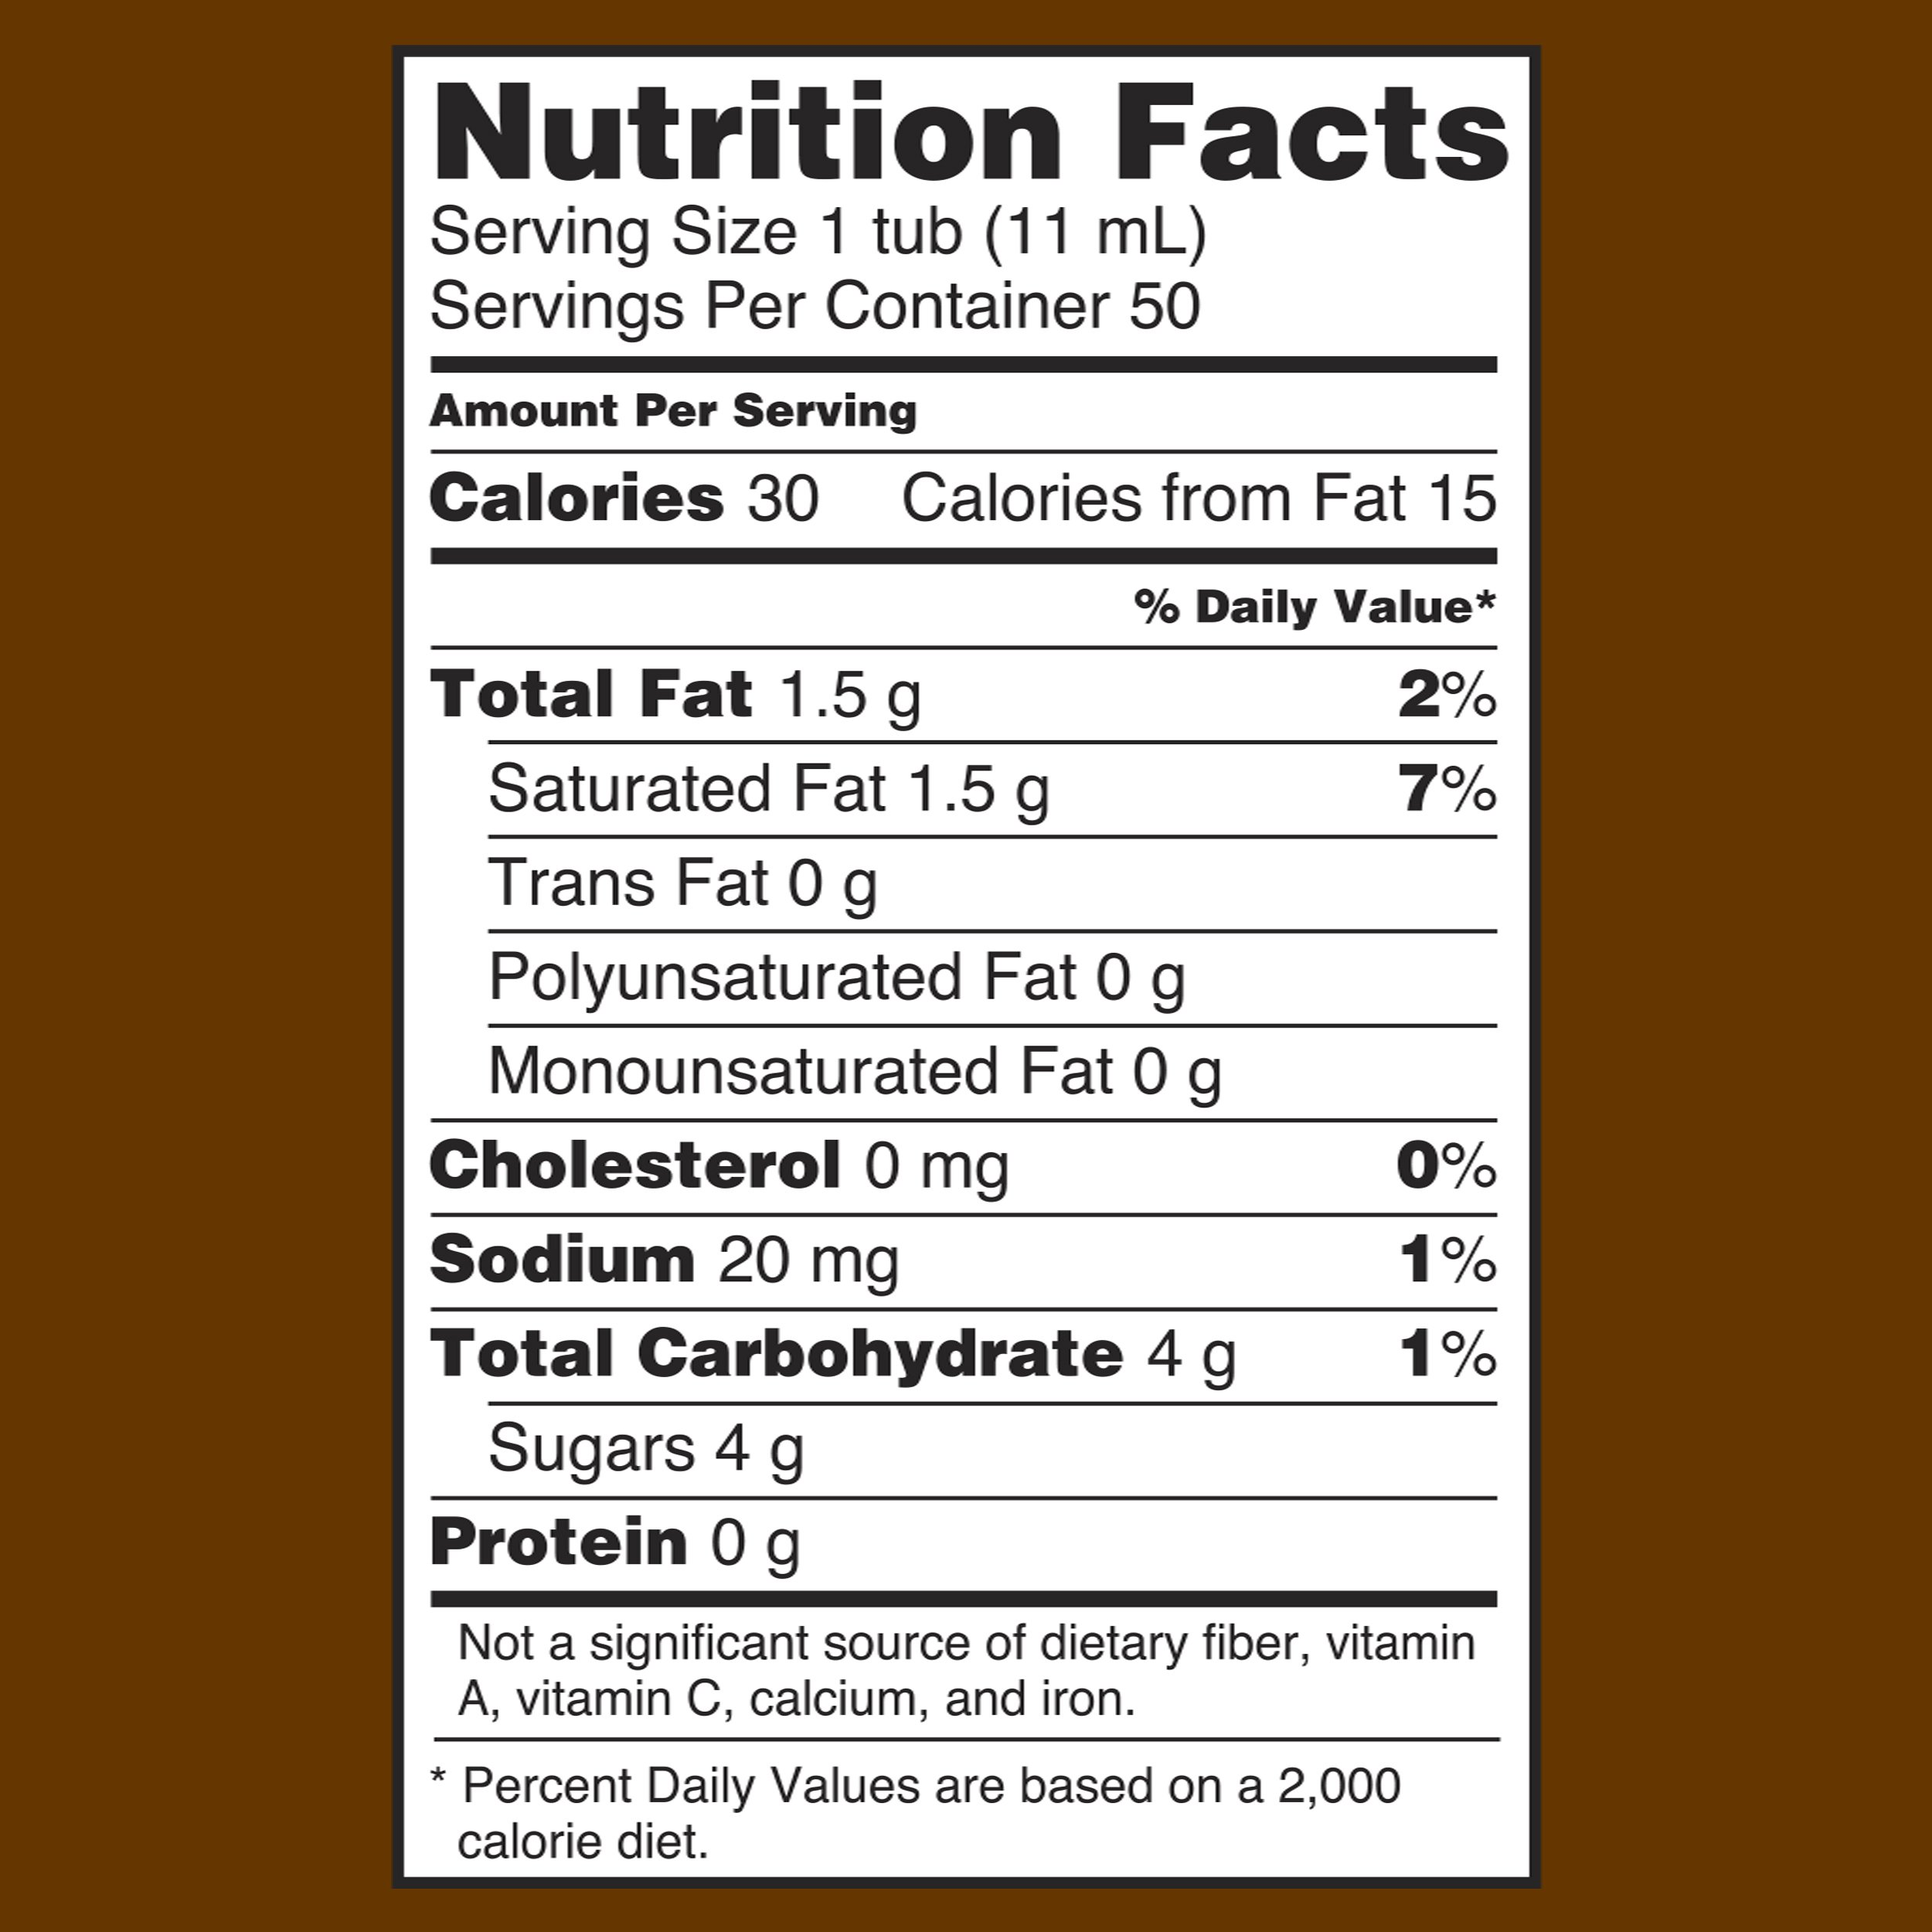 NESTLE COFFEE-MATE Coffee Creamer, Salted Caramel Chocolate, liquid creamer singles, 50 Count, Pack of 4 by Nestle Coffee Mate (Image #7)